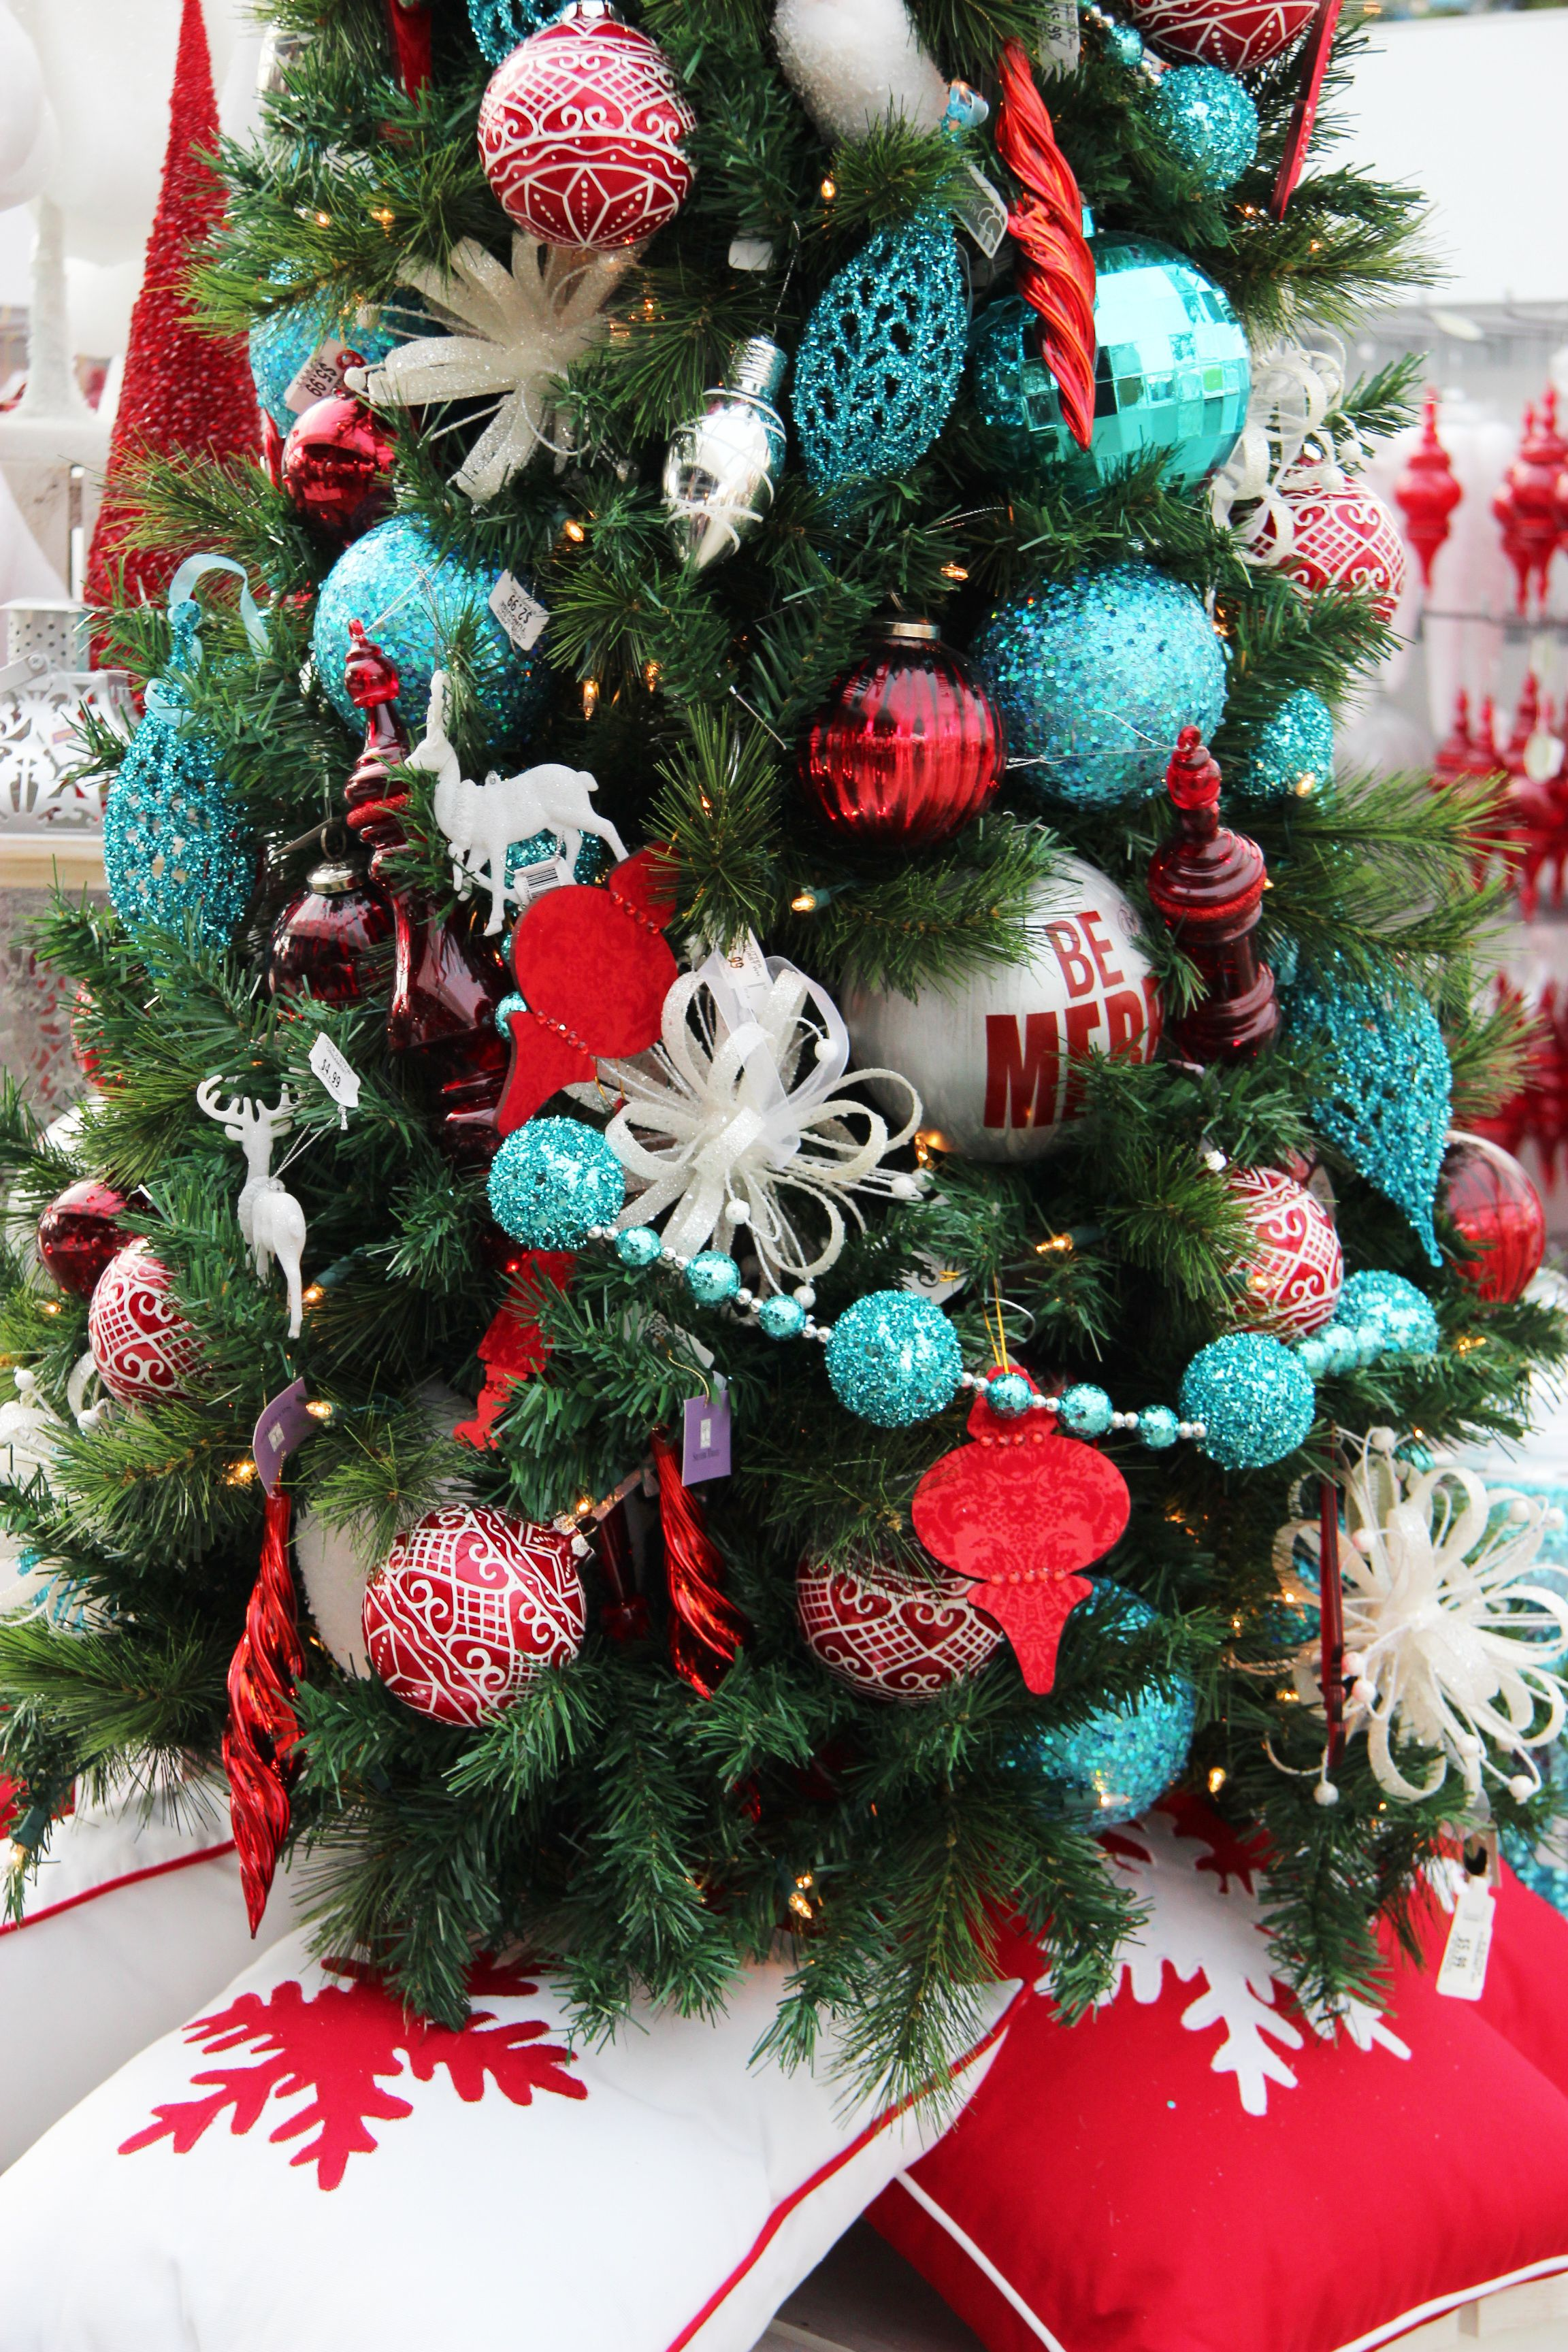 1000+ images about Aqua, Turquoise & Teal Christmas on Pinterest ...